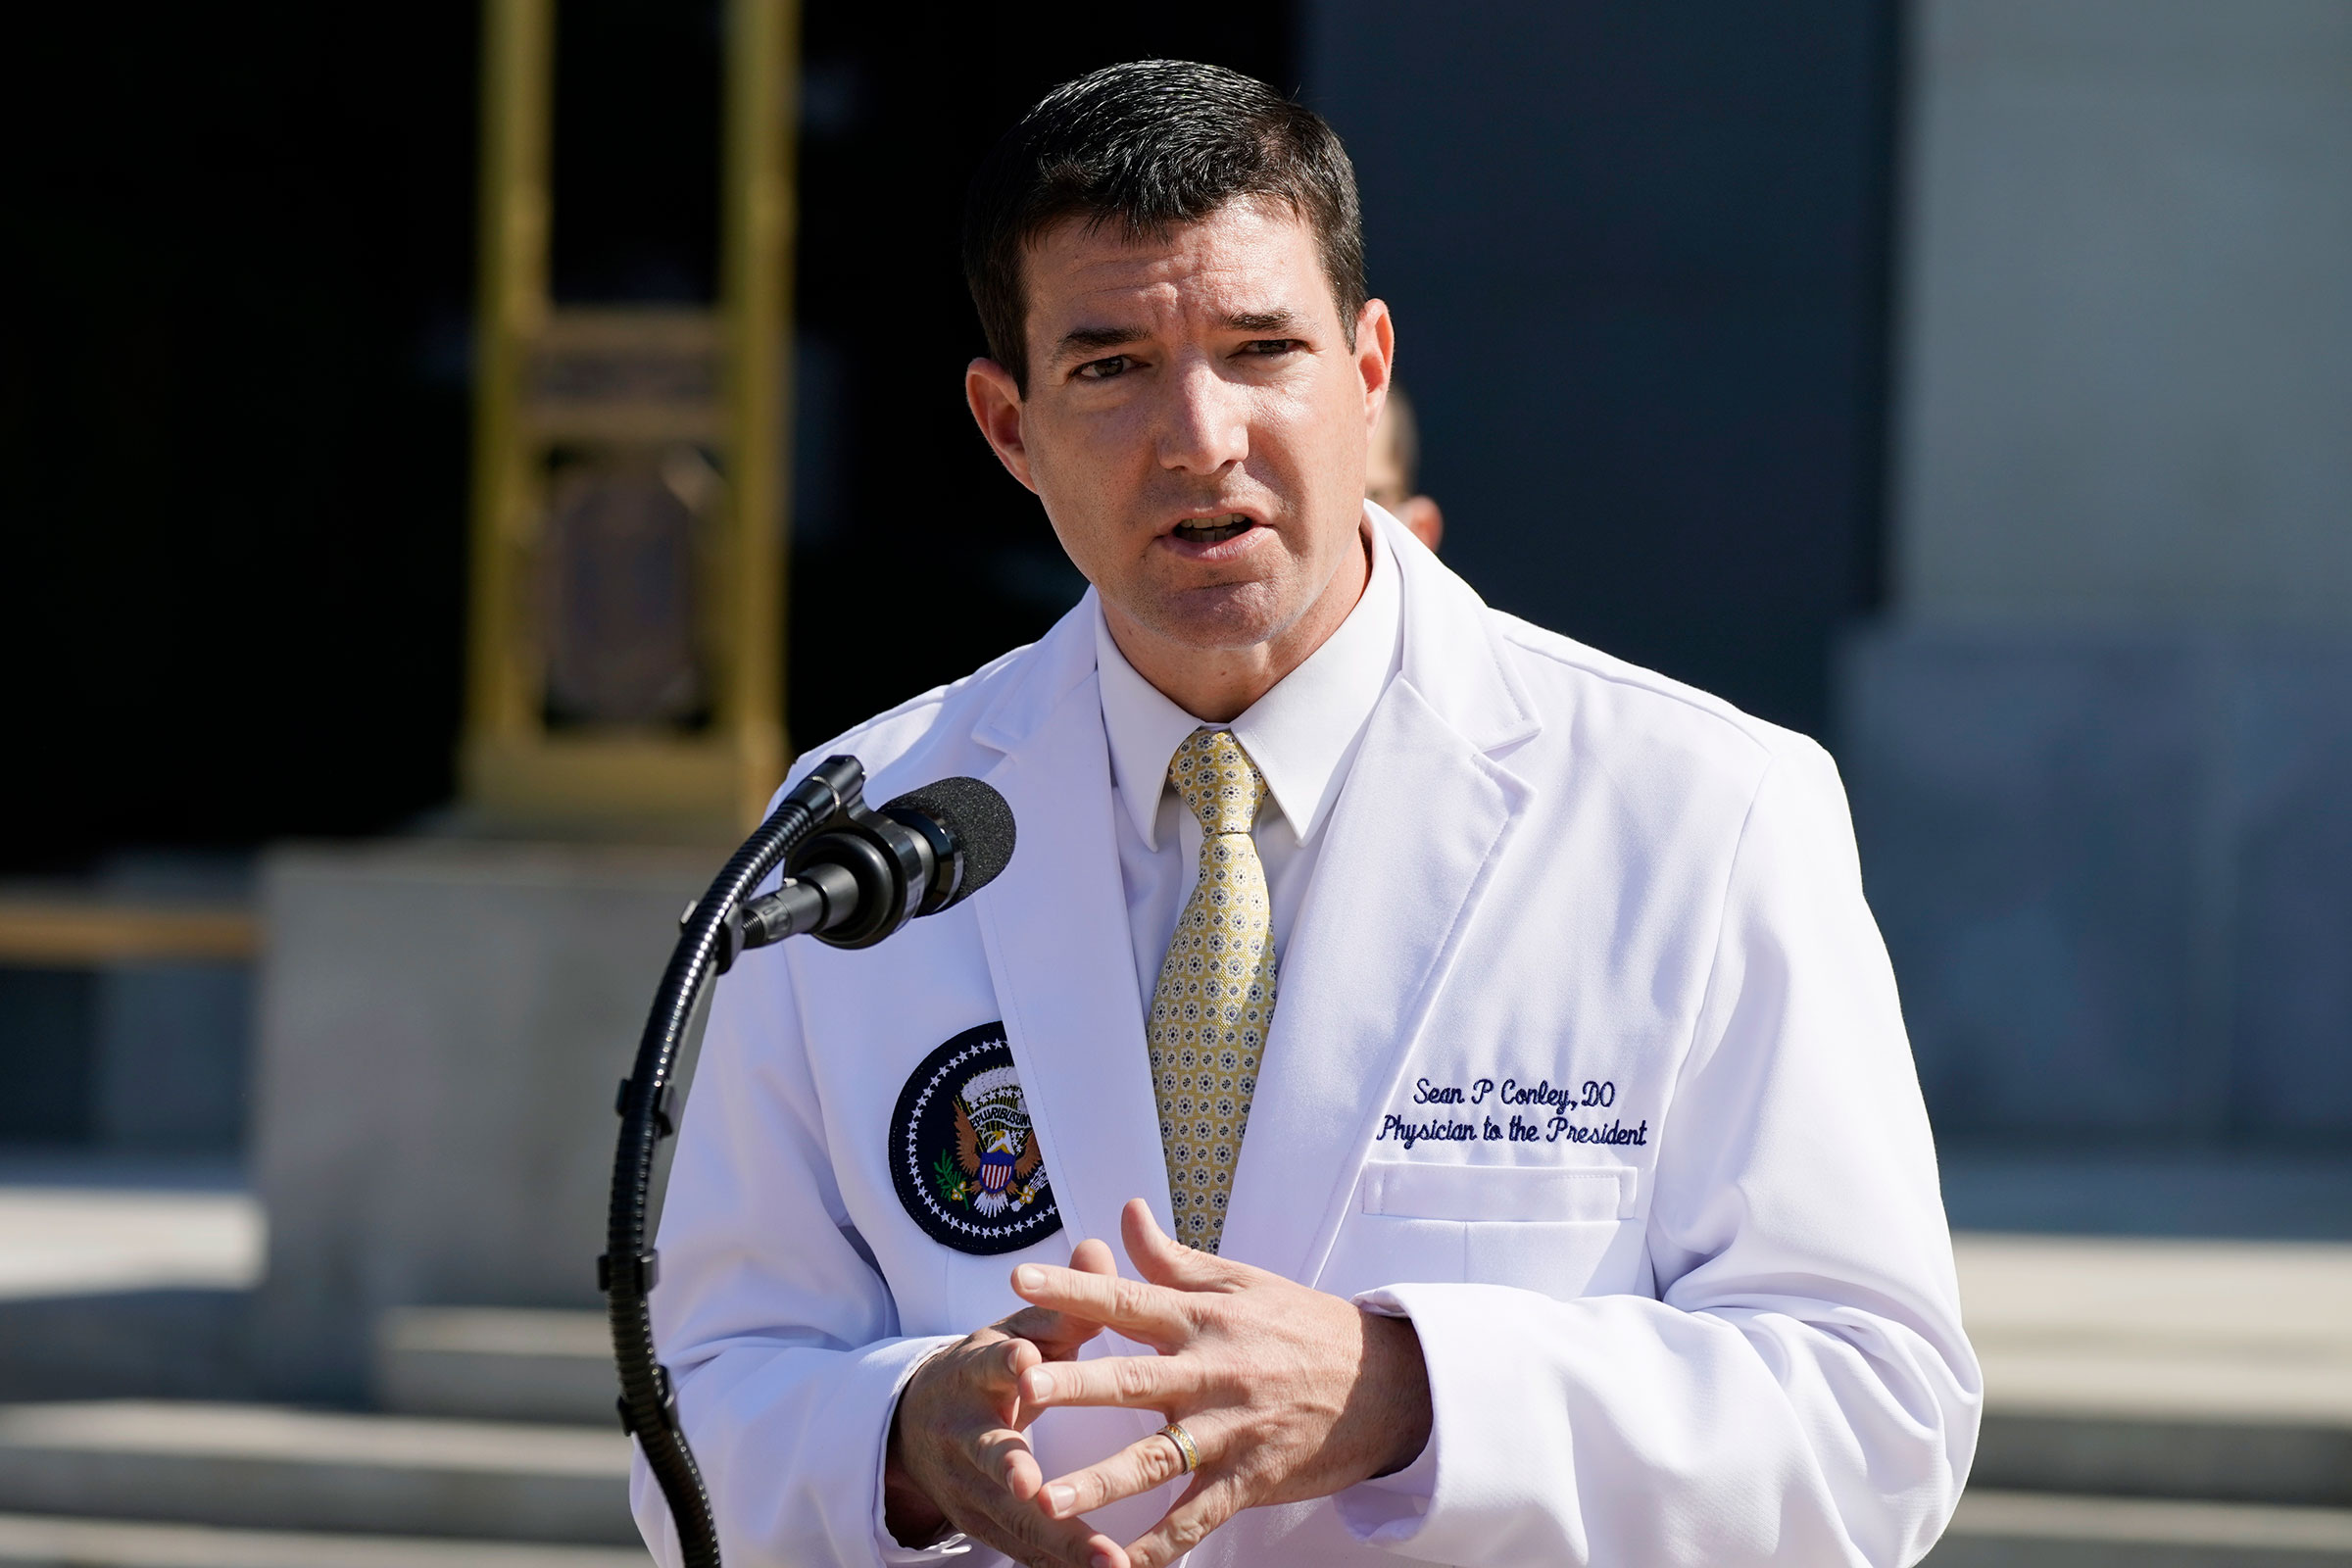 White House physician Sean Conley briefs reporters at Walter Reed National Military Medical Center in Bethesda, Maryland, on October 4.